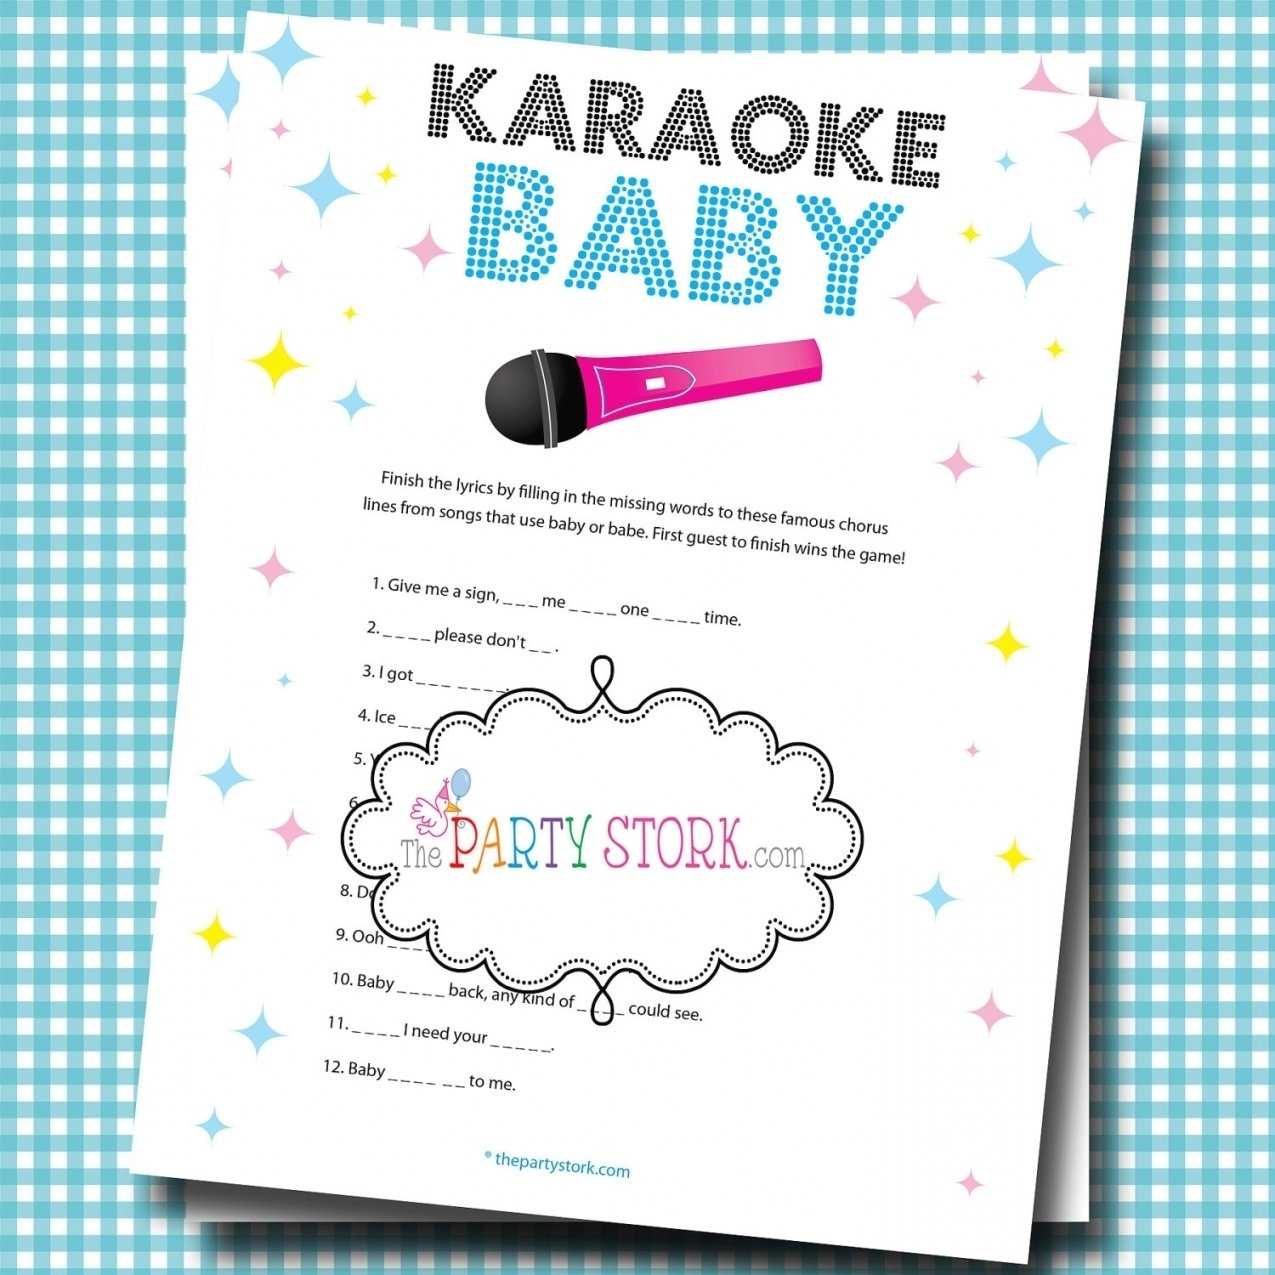 10 Perfect Baby Shower Game Ideas For A Girl review free baby shower game ideas vectorsecurity 2 2021